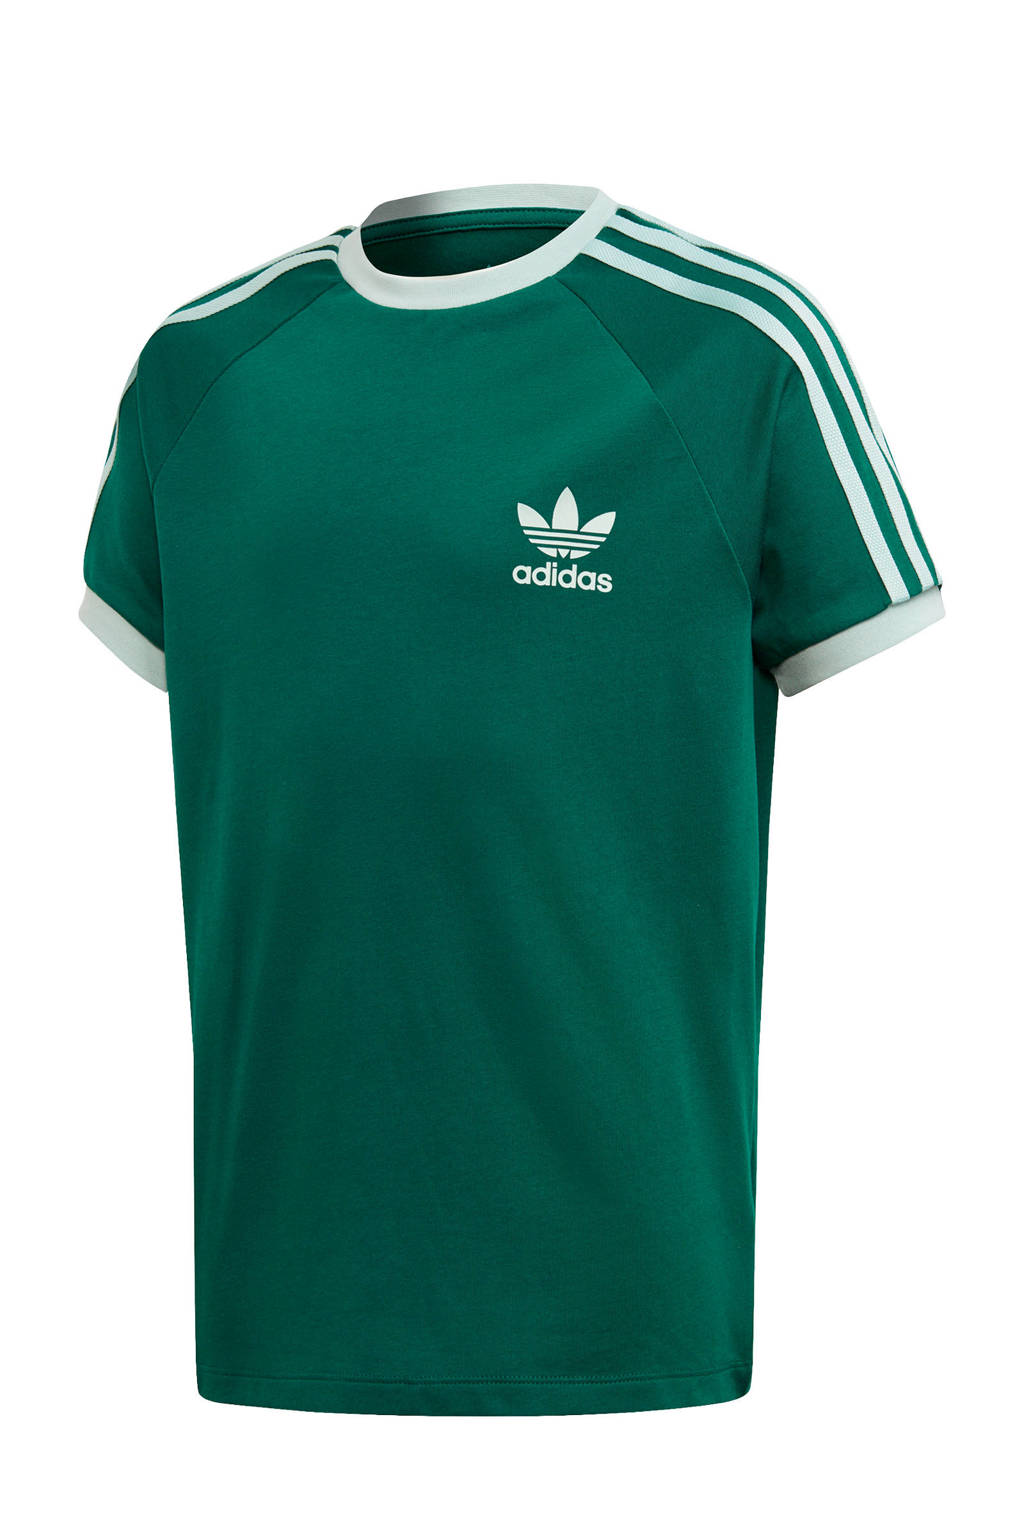 adidas originals T-shirt groen, Groen/wit